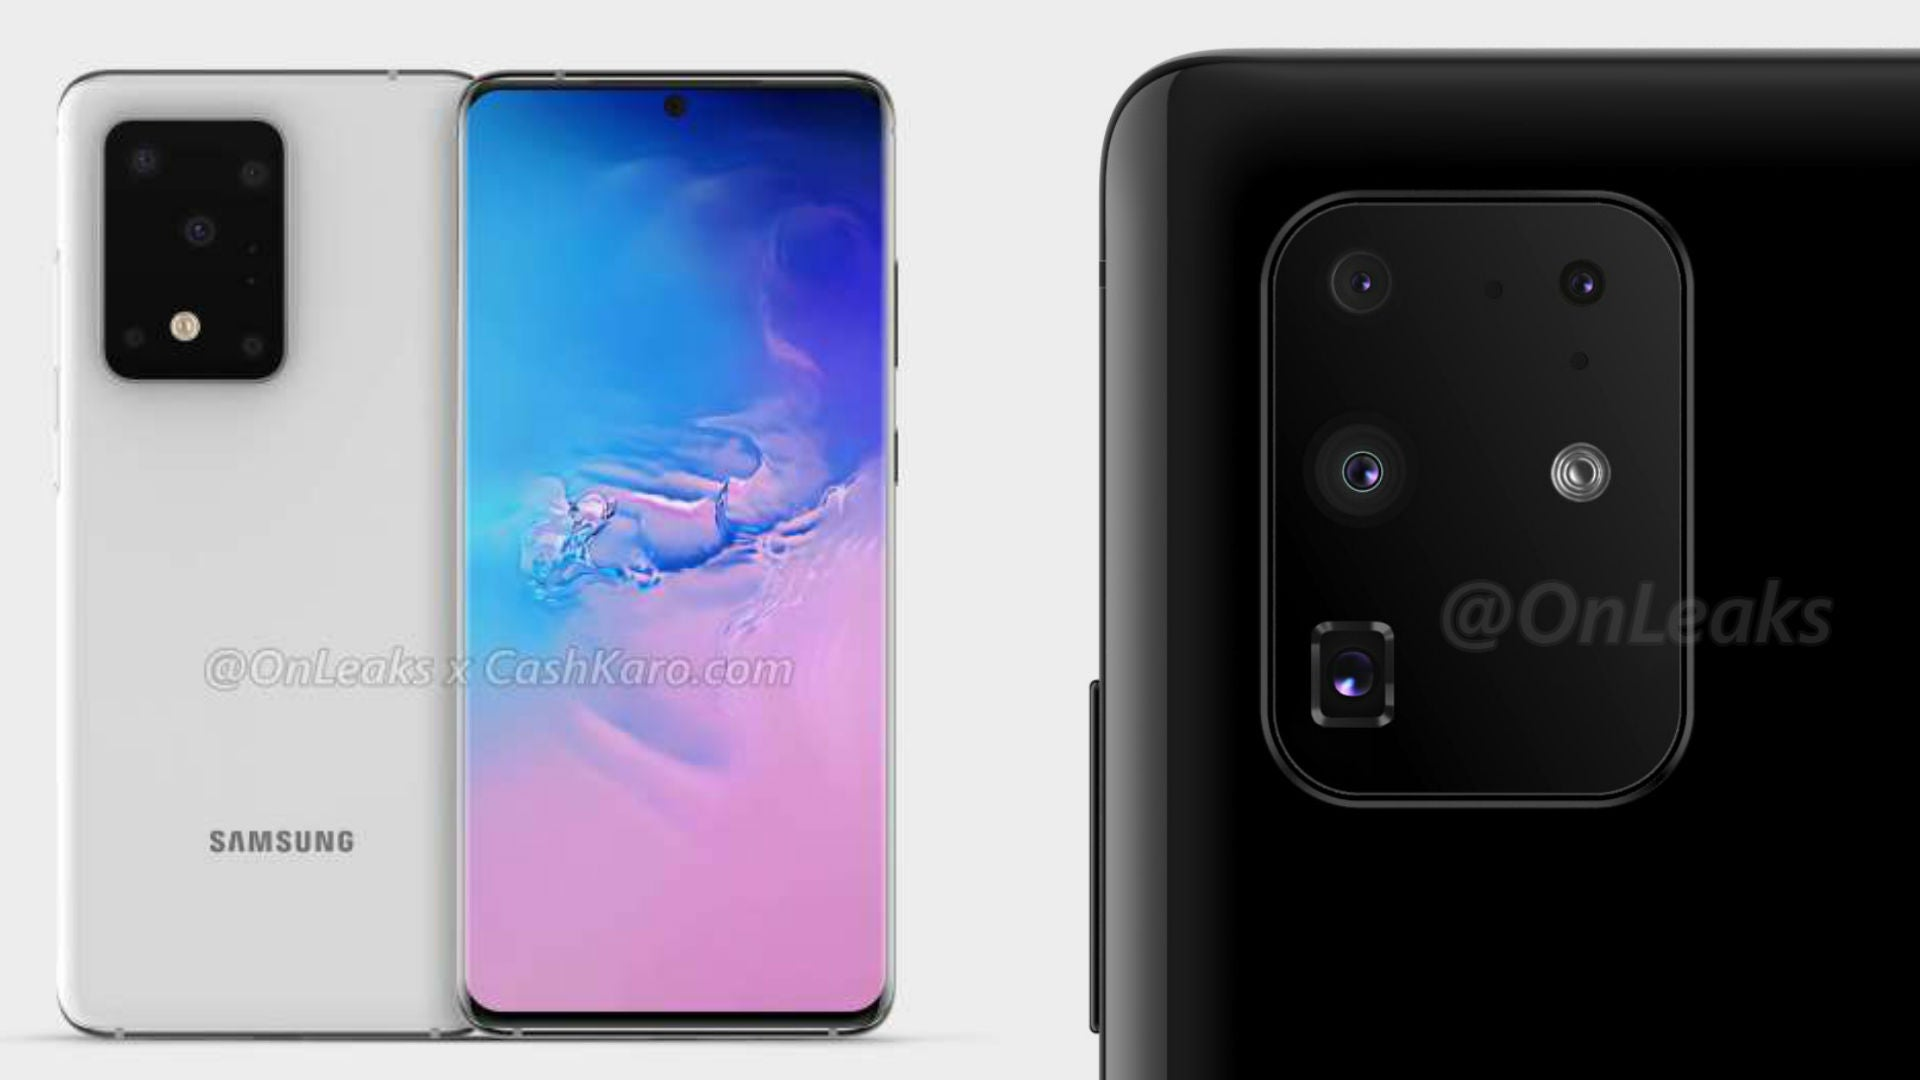 More Galaxy S11 Leaks Appear To Settle The Samsung Flagship's Most Debated Feature